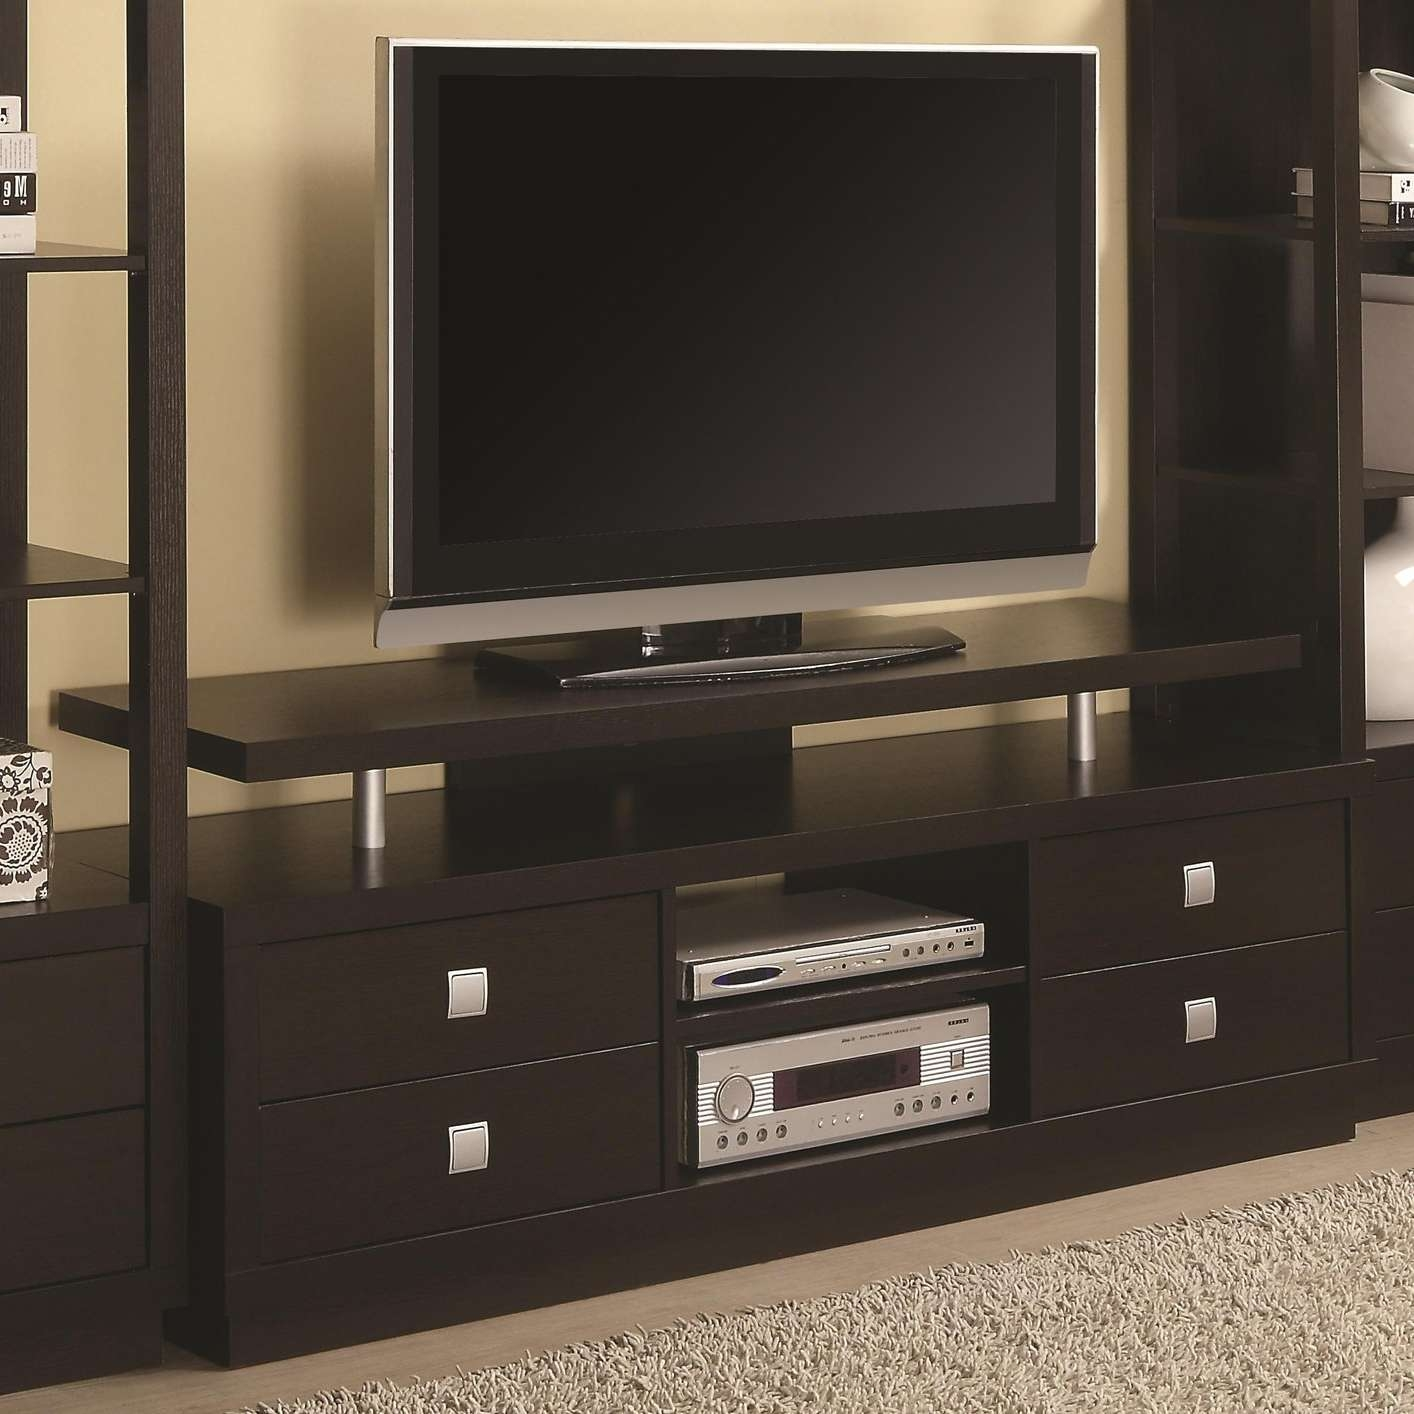 Brown Wood Tv Stand – Steal A Sofa Furniture Outlet Los Angeles Ca With Wooden Tv Stands (View 4 of 15)